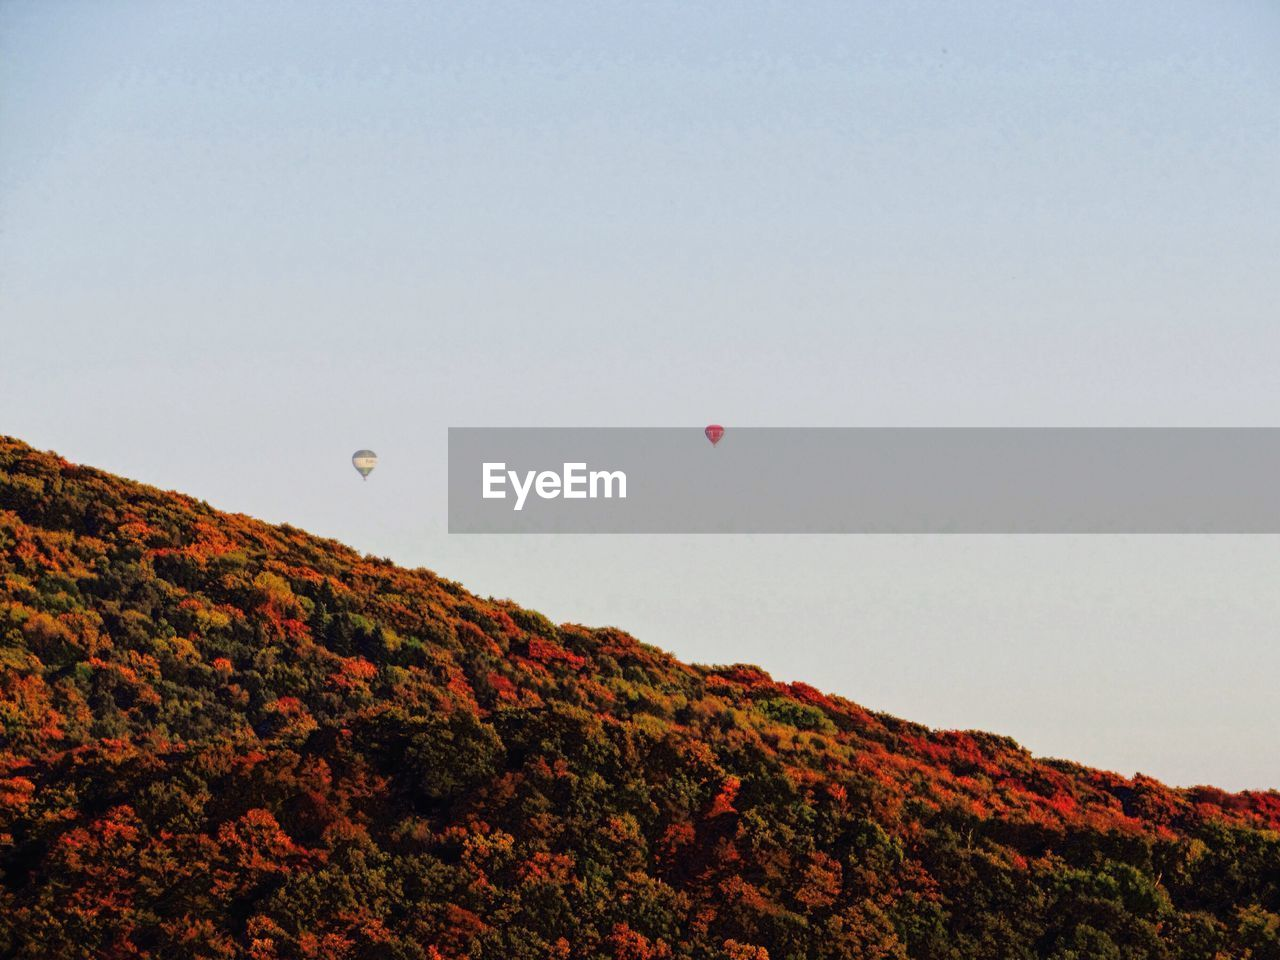 sky, balloon, environment, beauty in nature, hot air balloon, scenics - nature, mountain, landscape, nature, clear sky, mid-air, air vehicle, tranquil scene, transportation, copy space, tranquility, flying, land, non-urban scene, adventure, no people, outdoors